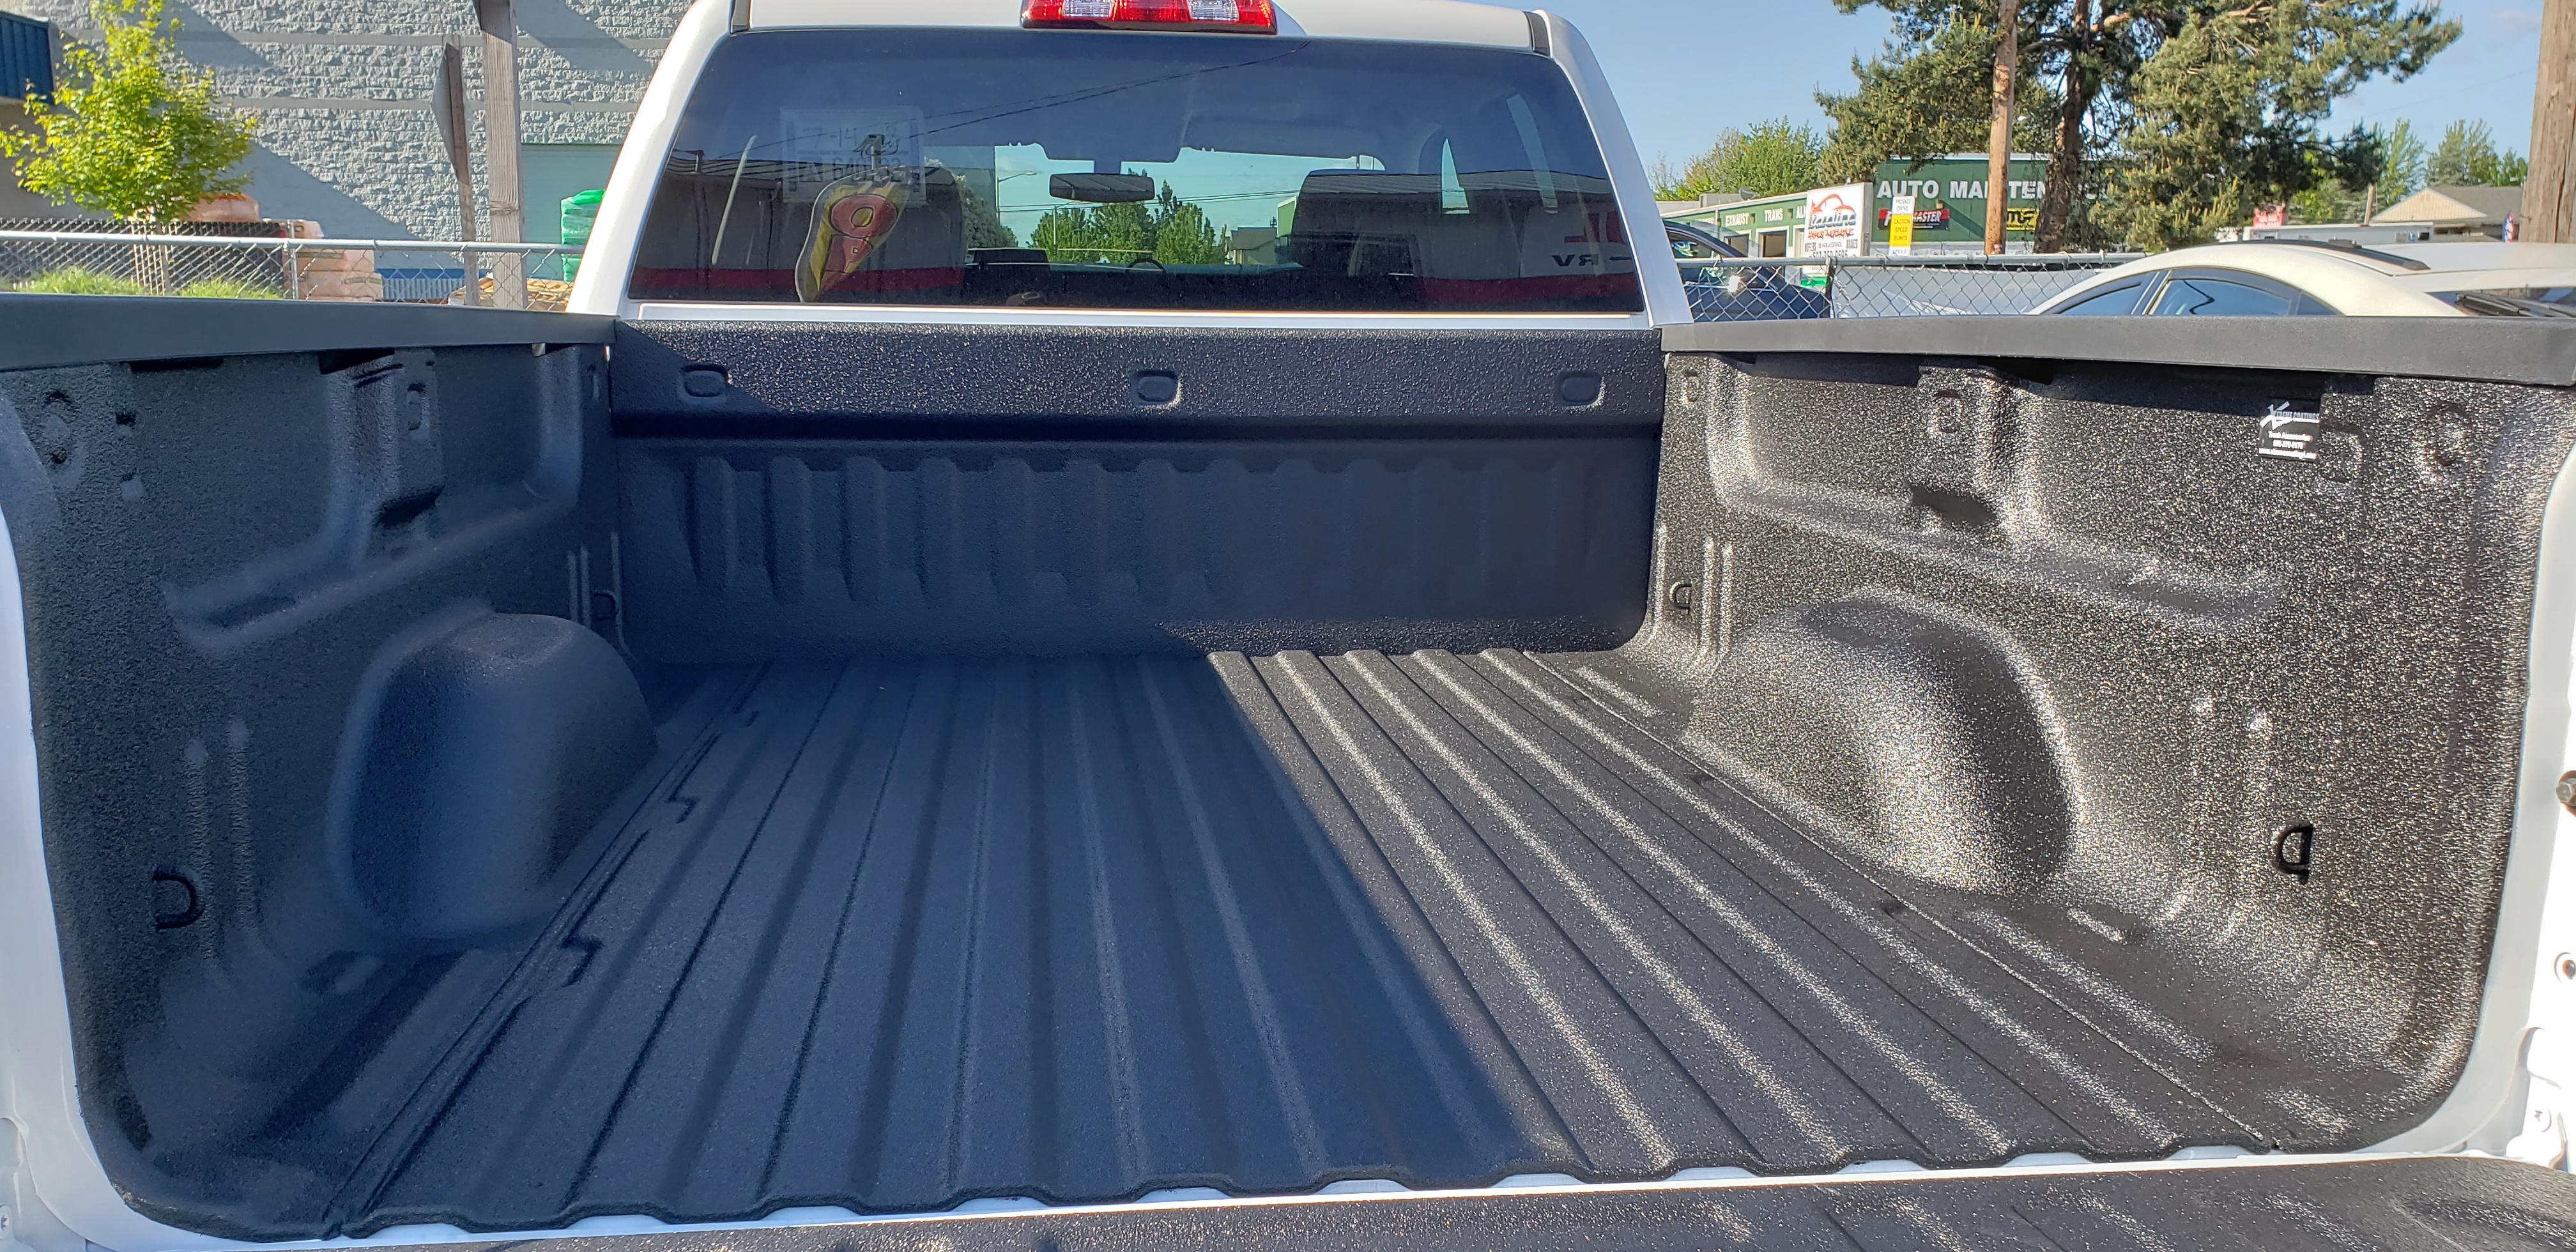 Spray on bedliners-Trailer hitches- Truck accessories